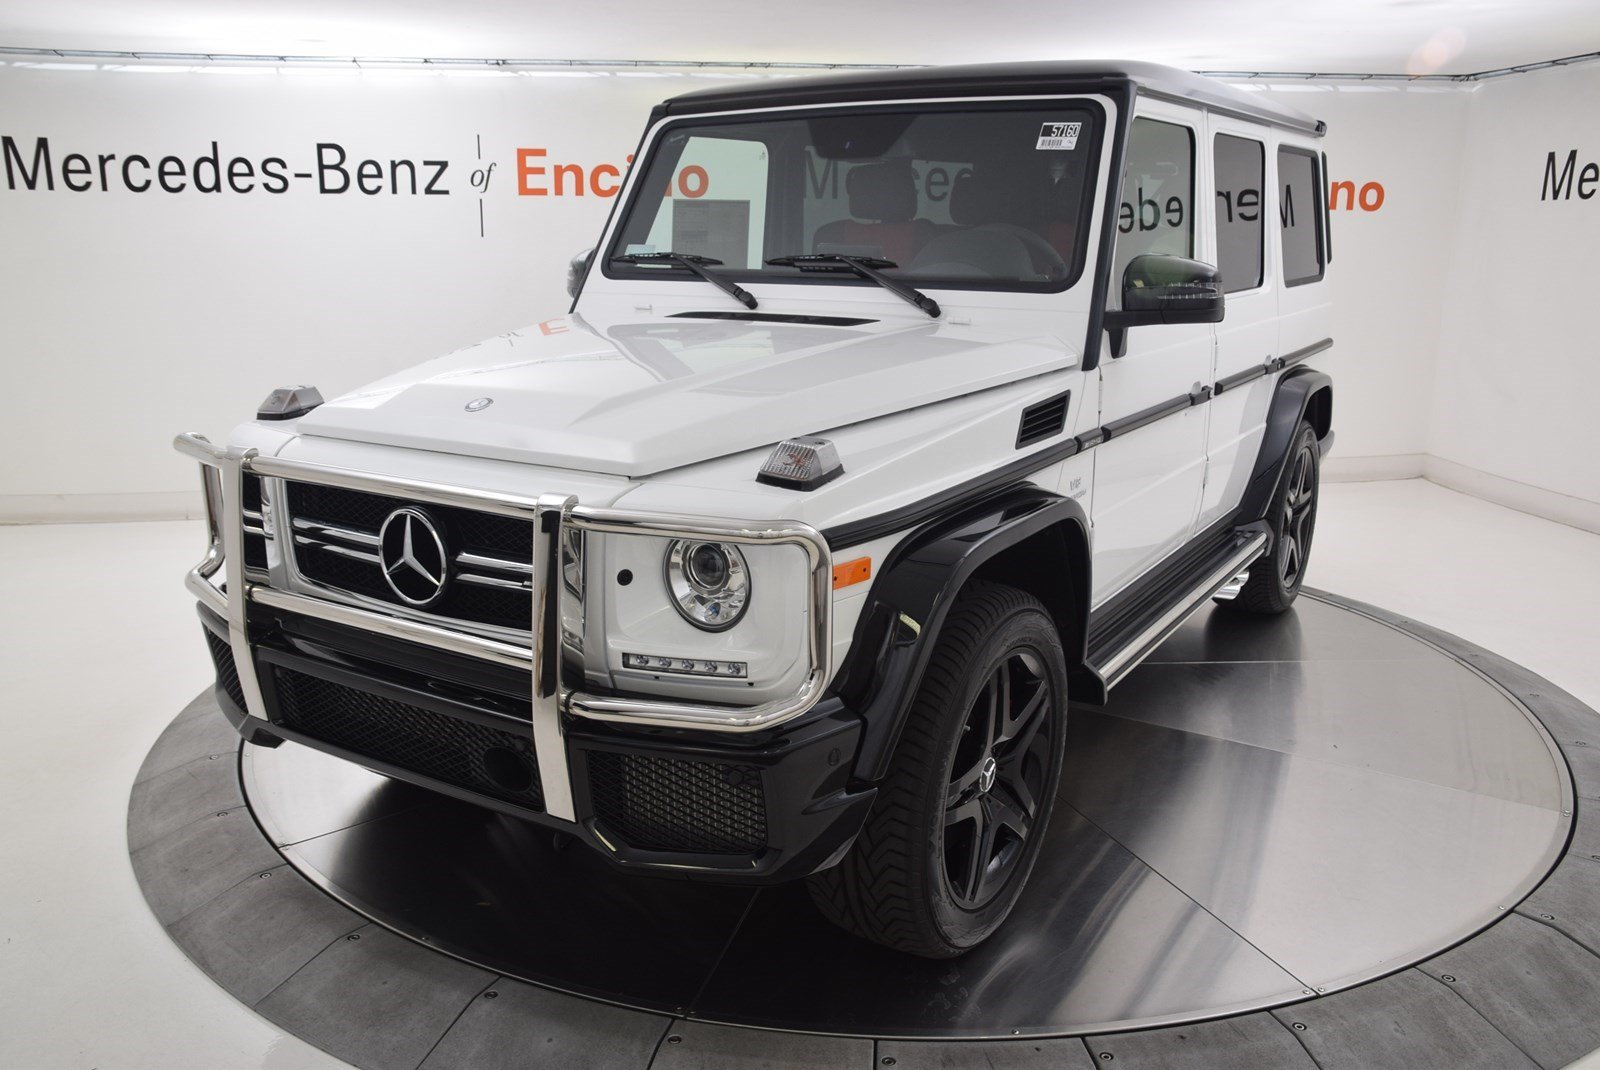 New 2017 mercedes benz g class g 63 amg suv suv in encino for Mercedes benz e class suv